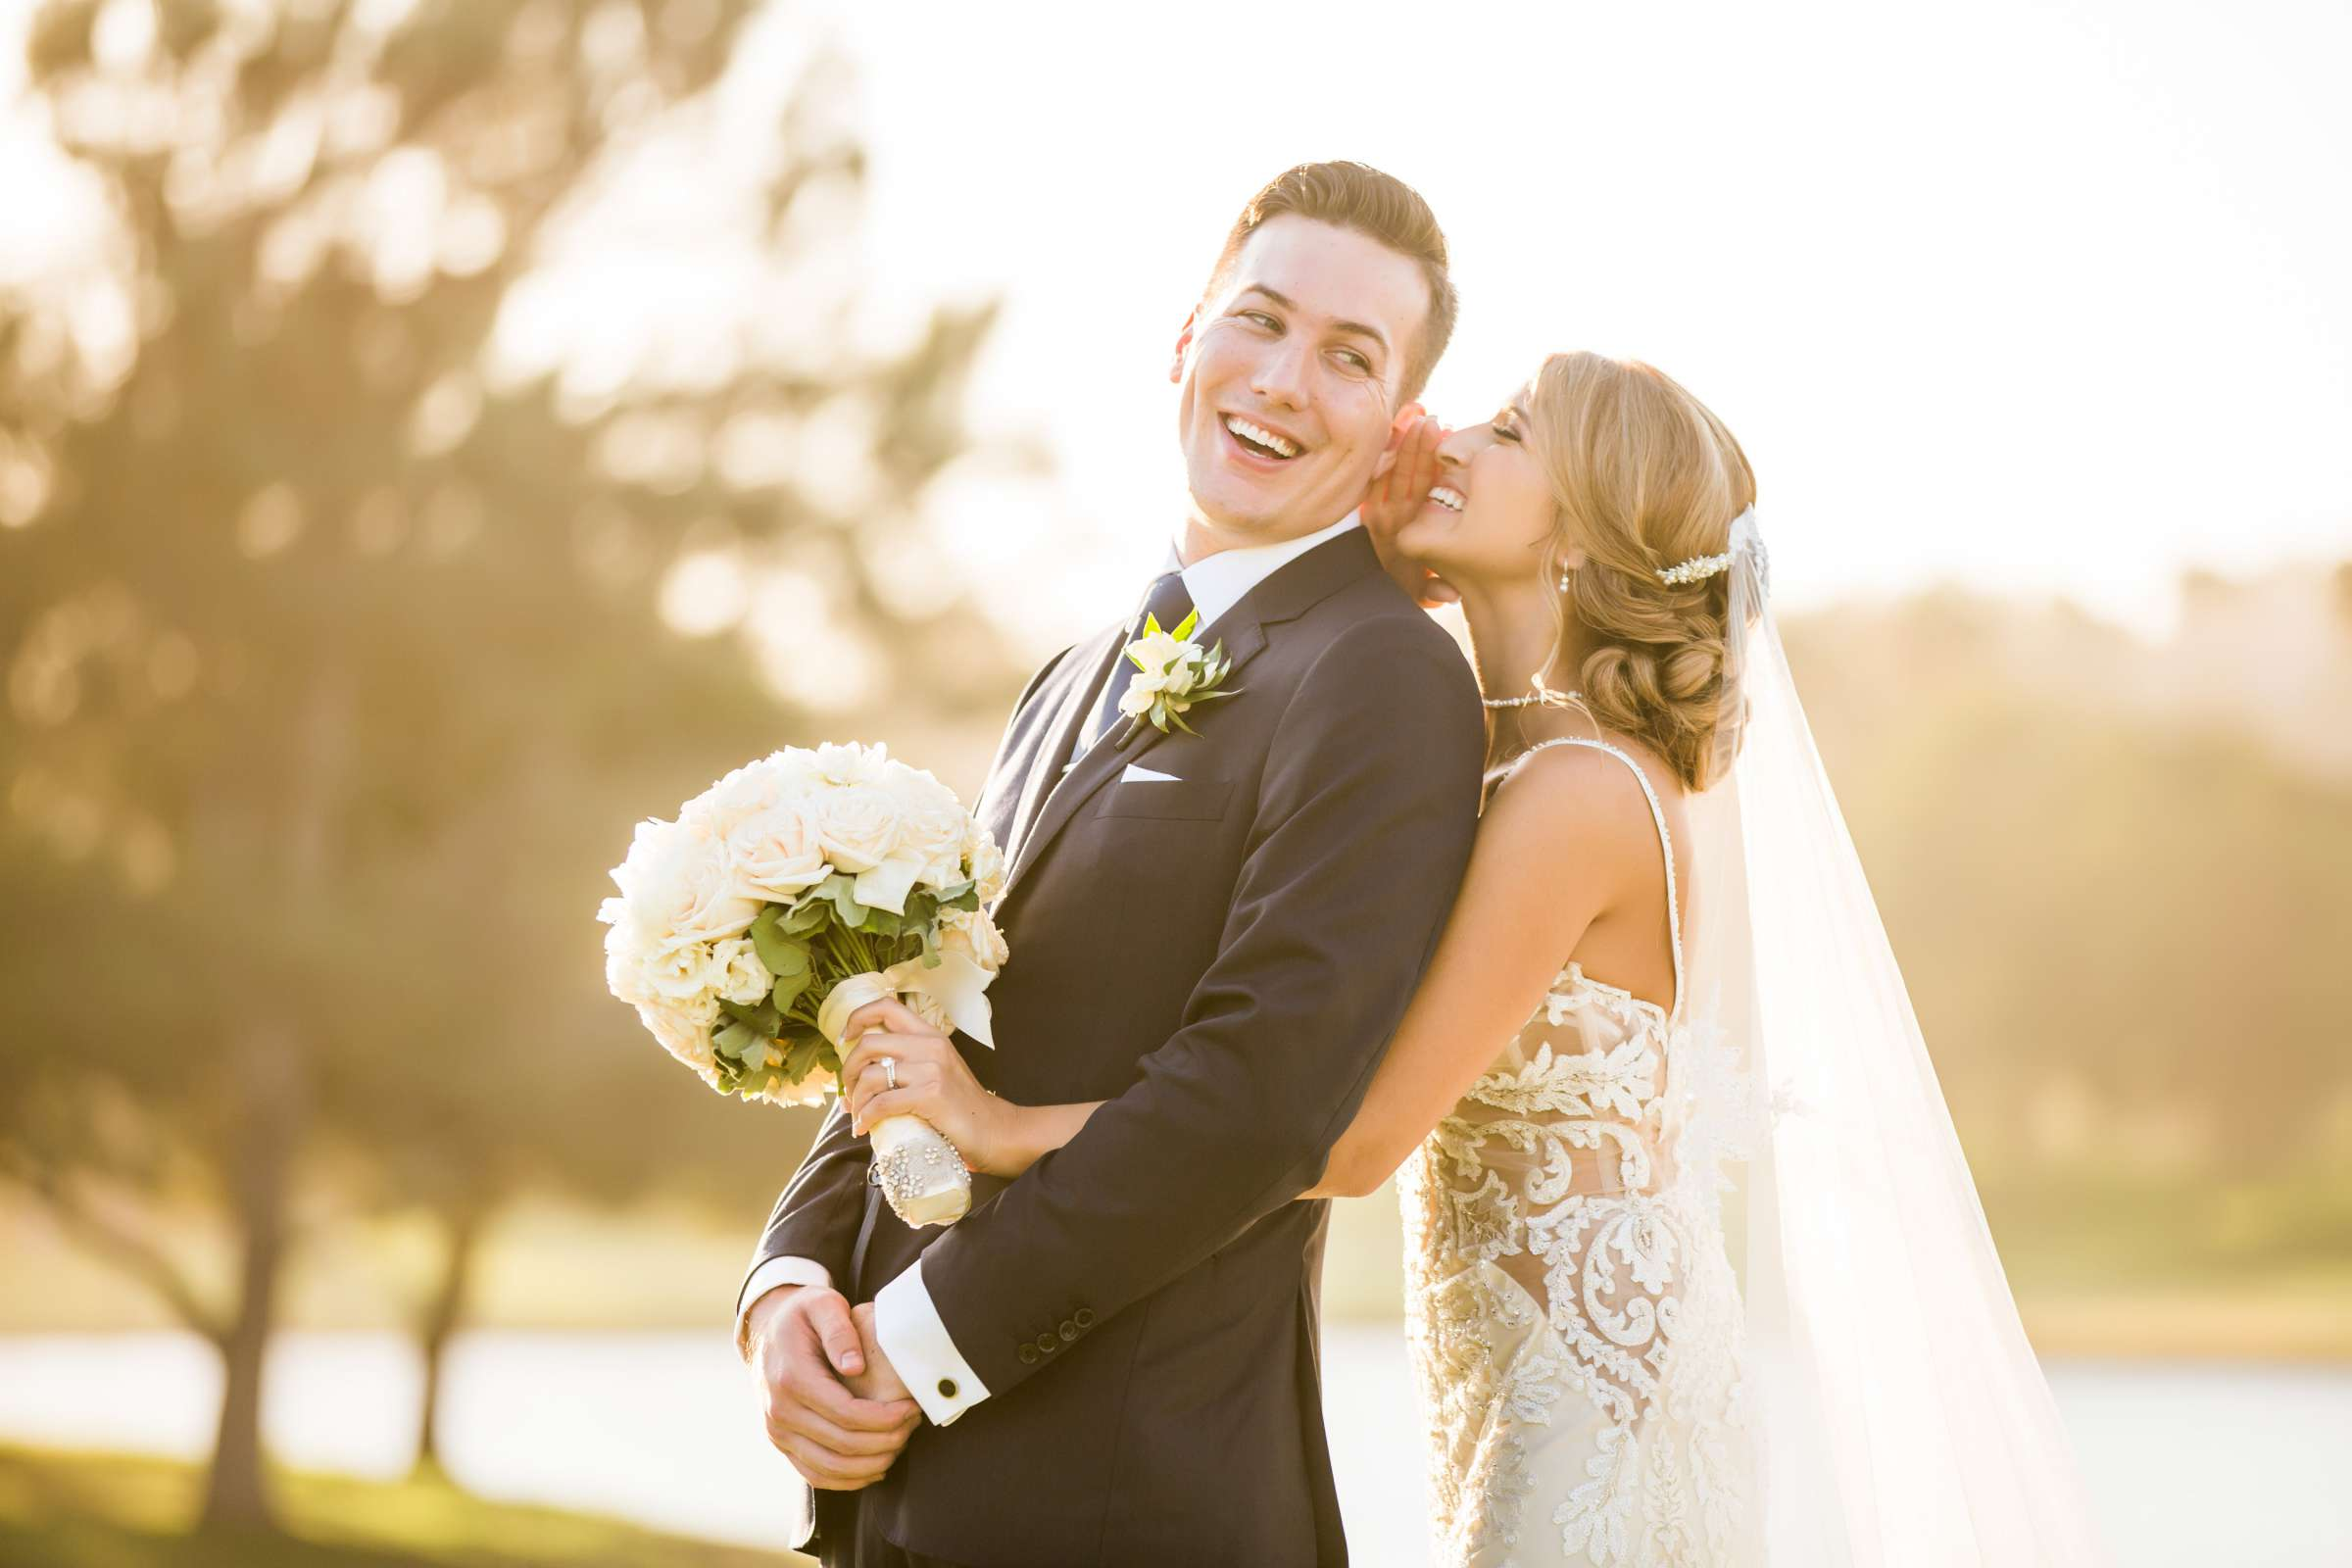 Fairbanks Ranch Country Club Wedding coordinated by Monarch Weddings, Gabriella and Kyle Wedding Photo #106 by True Photography